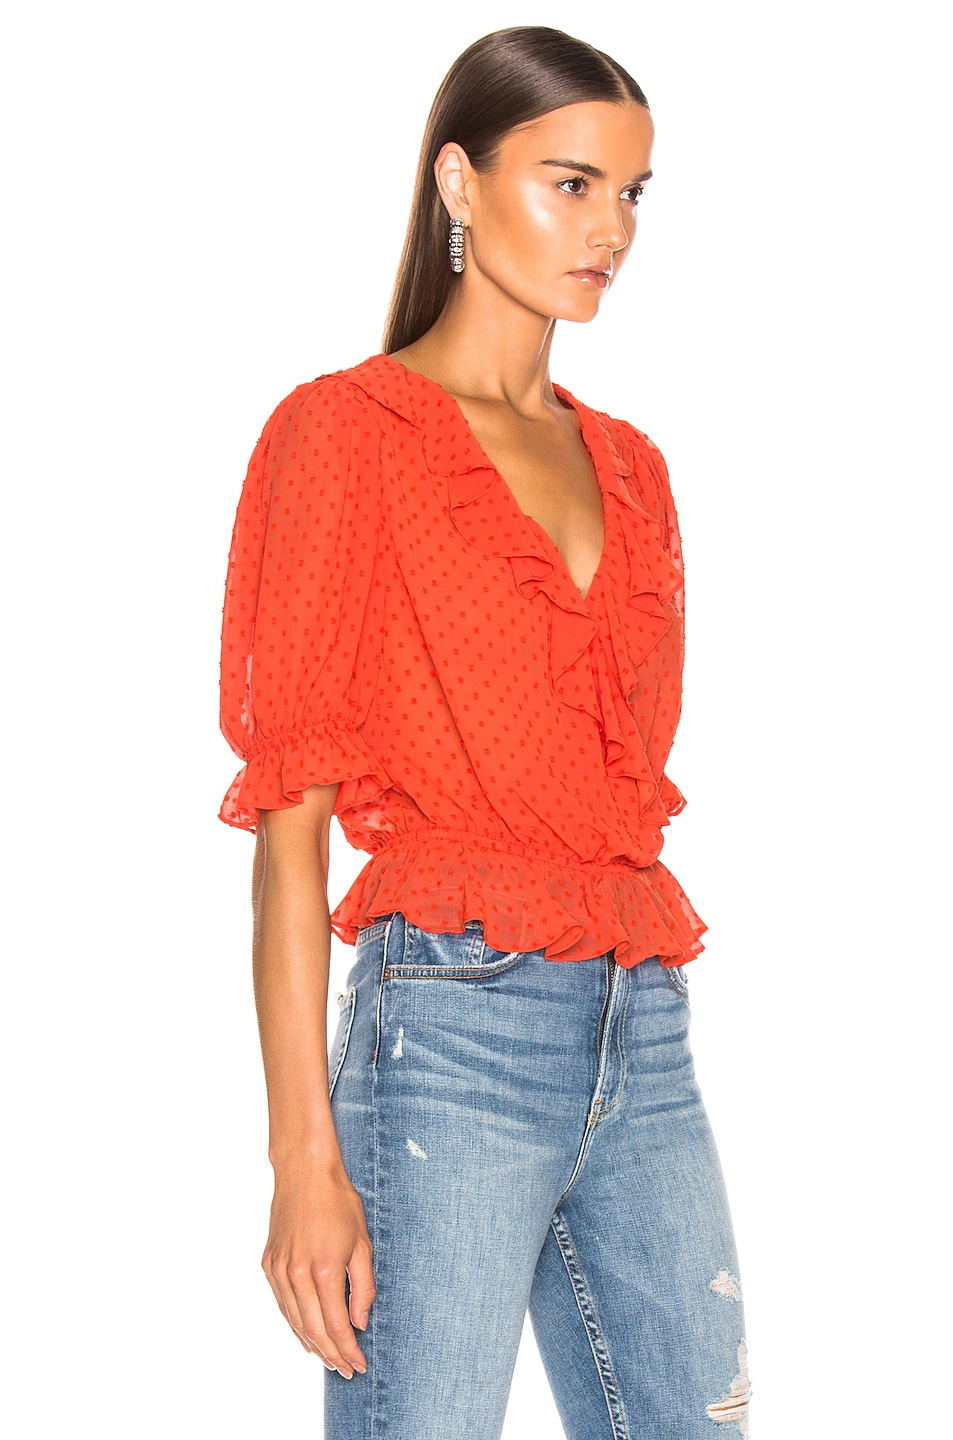 Image 2 of ICONS Objects of Devotion Cha Cha Blouse in Hot Orange